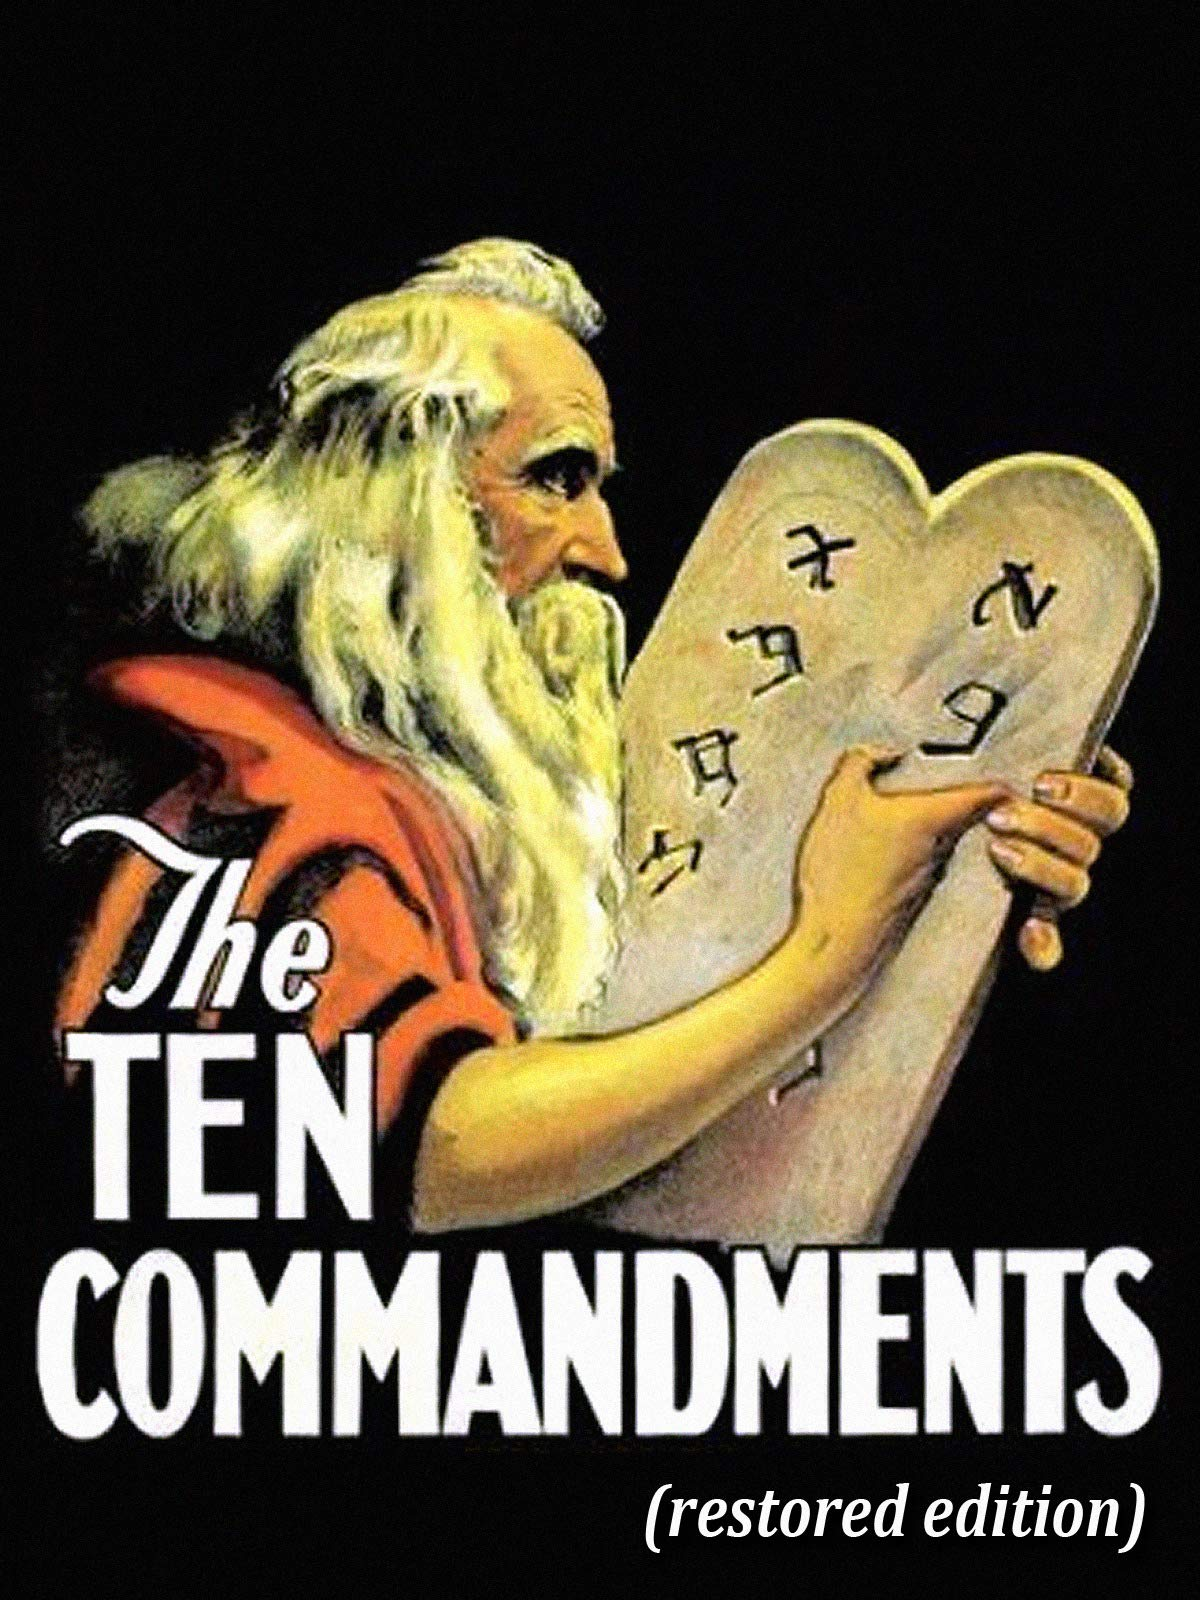 The Ten Commandments - Restored Edition